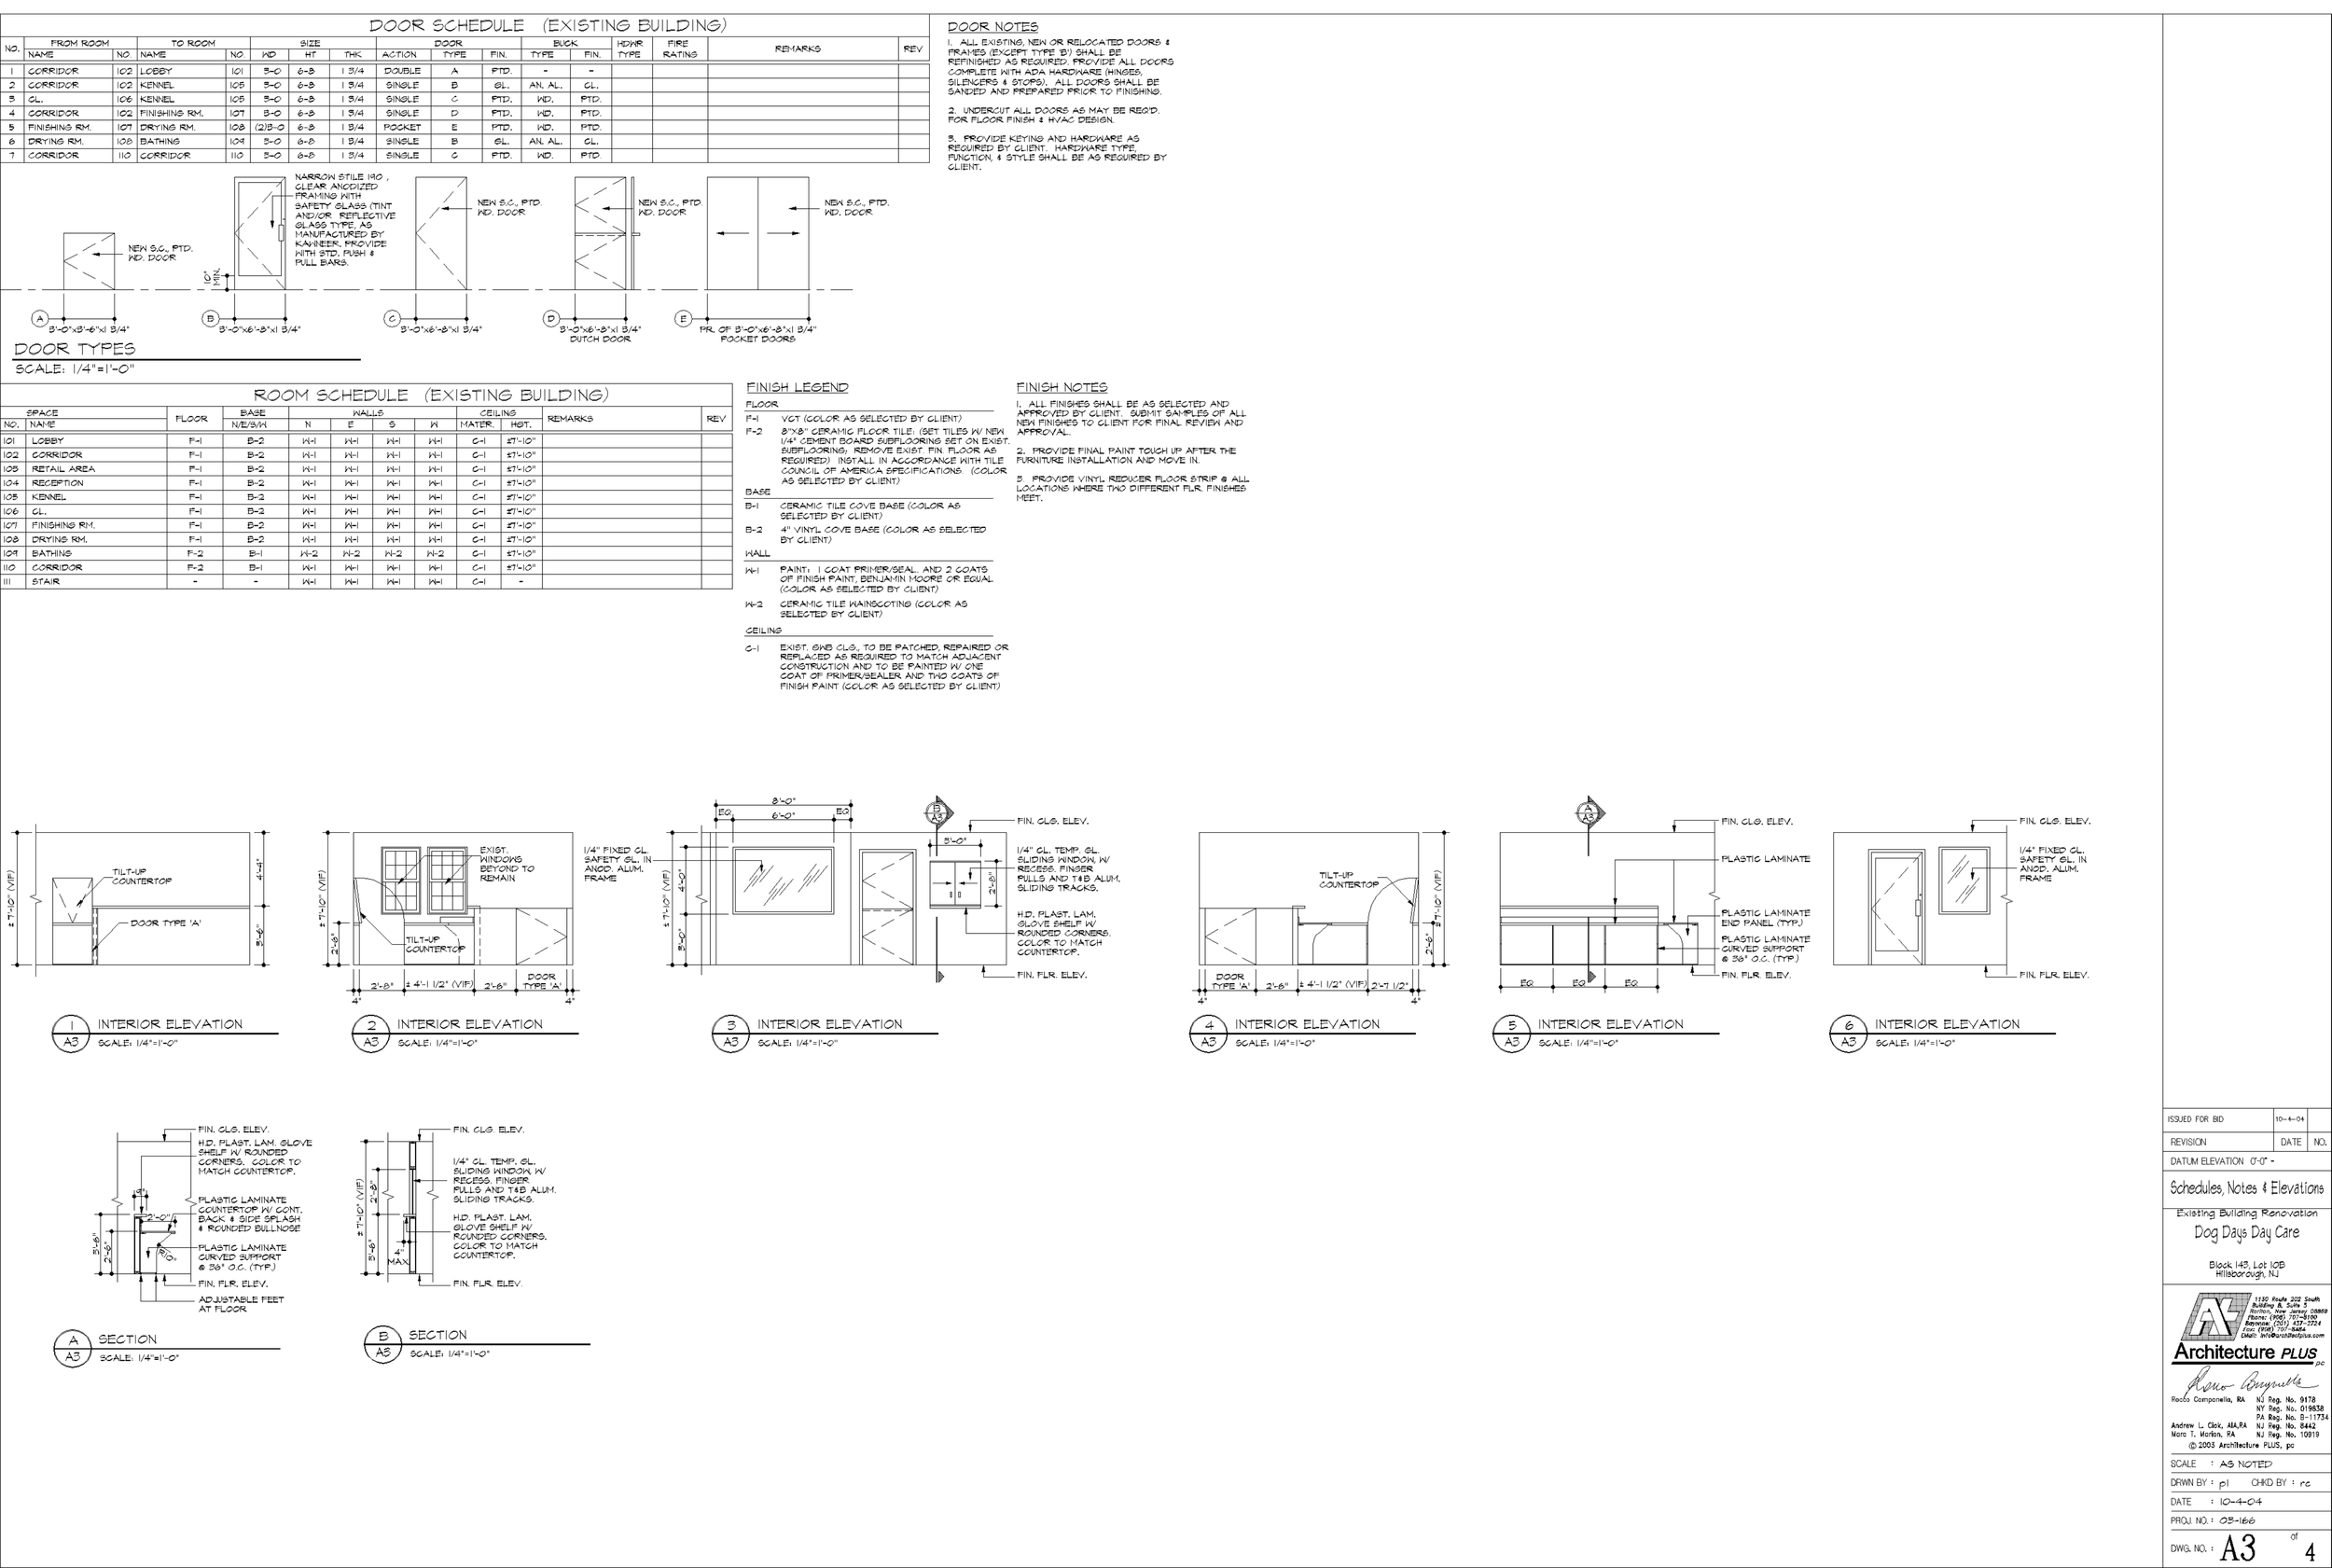 Architectural 03166a3.png